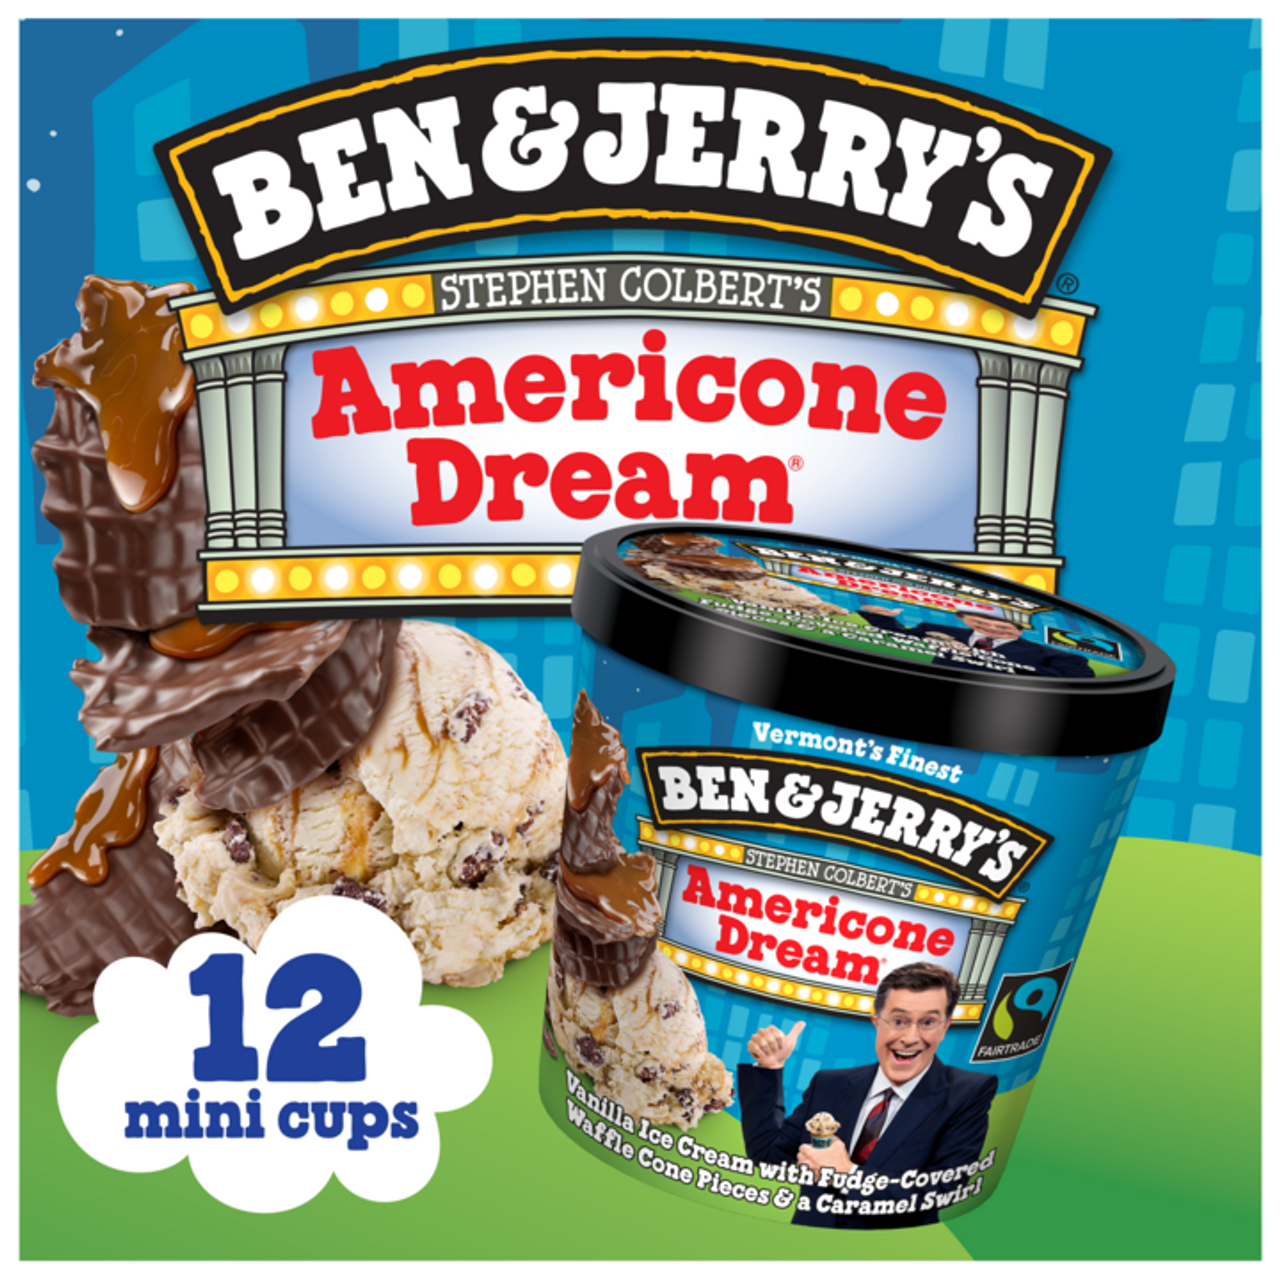 Americone Dream Ice Cream Ingredients : Trying out ben & jerry's new stephen colbert americone dream ice cream.